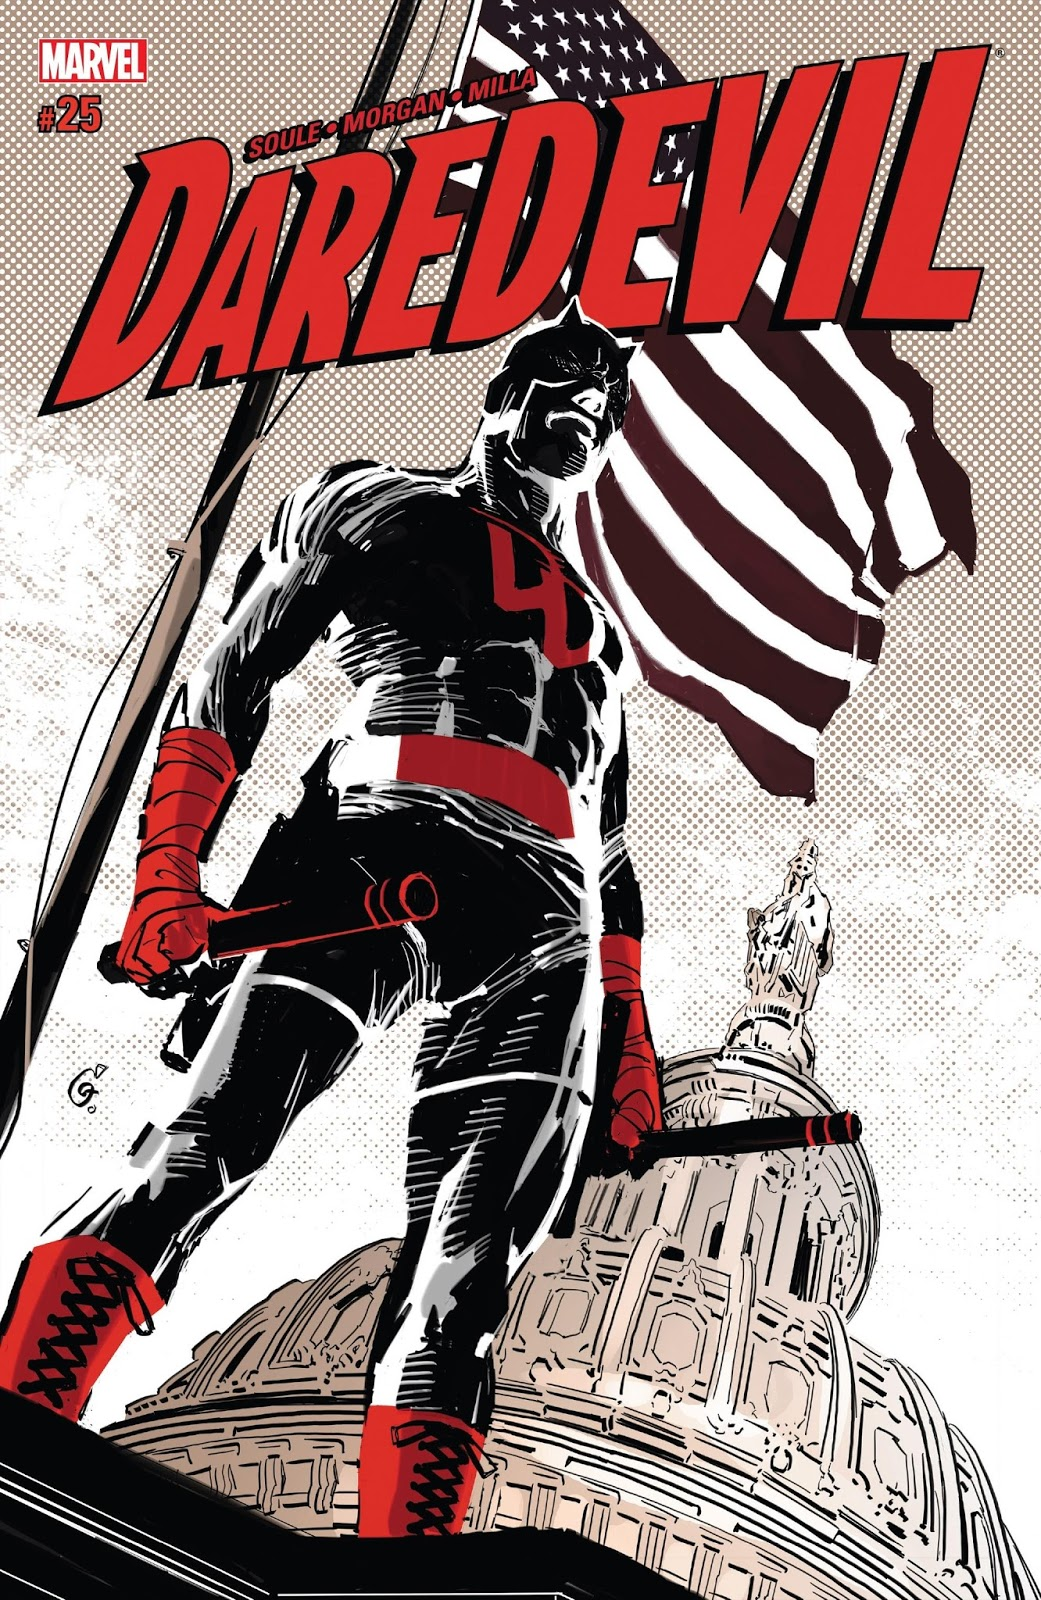 Weird Science DC Comics: Daredevil #25 Review